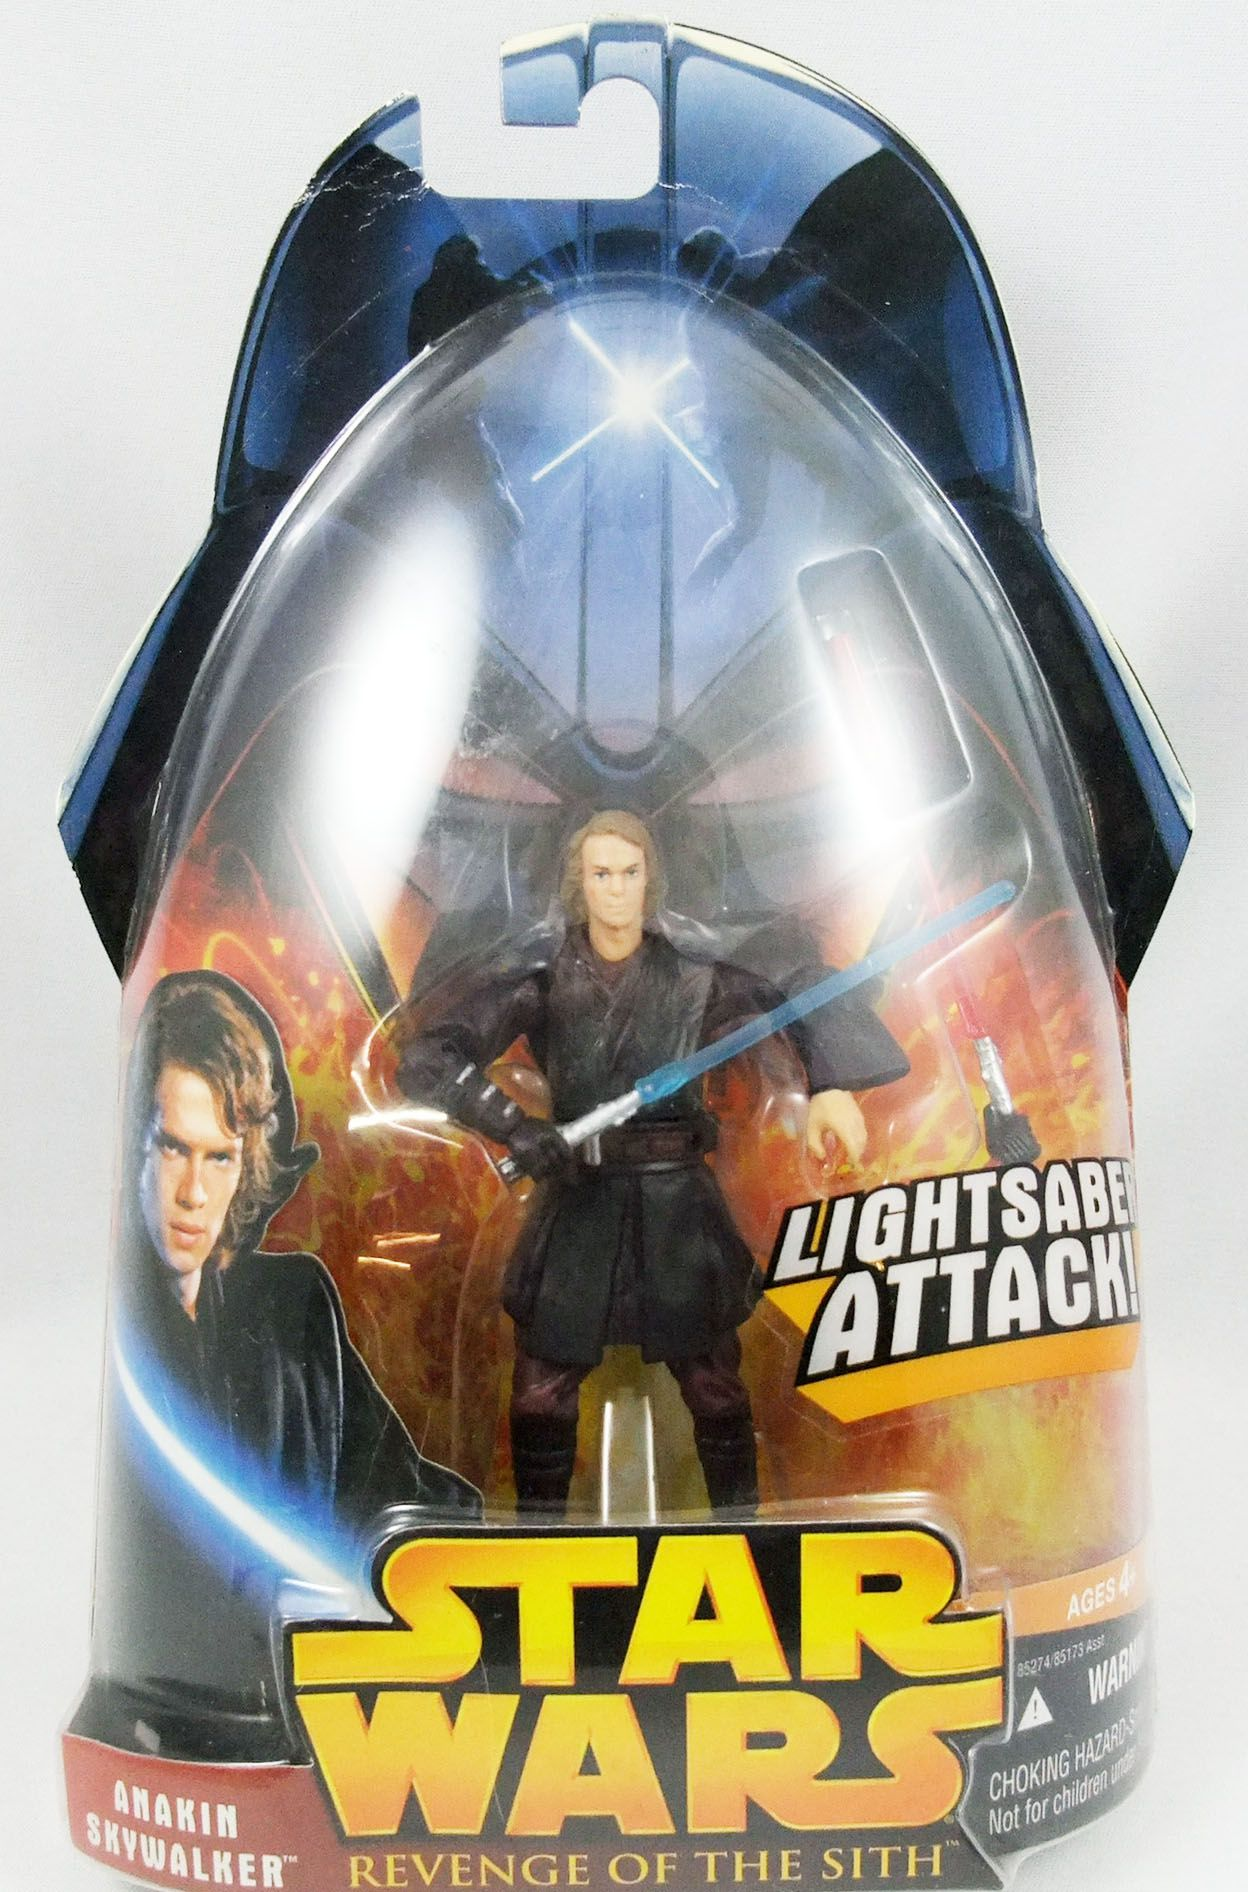 Star Wars Episode Iii Revenge Of The Sith Hasbro Anakin Skywalker Lightsaber Attack 2